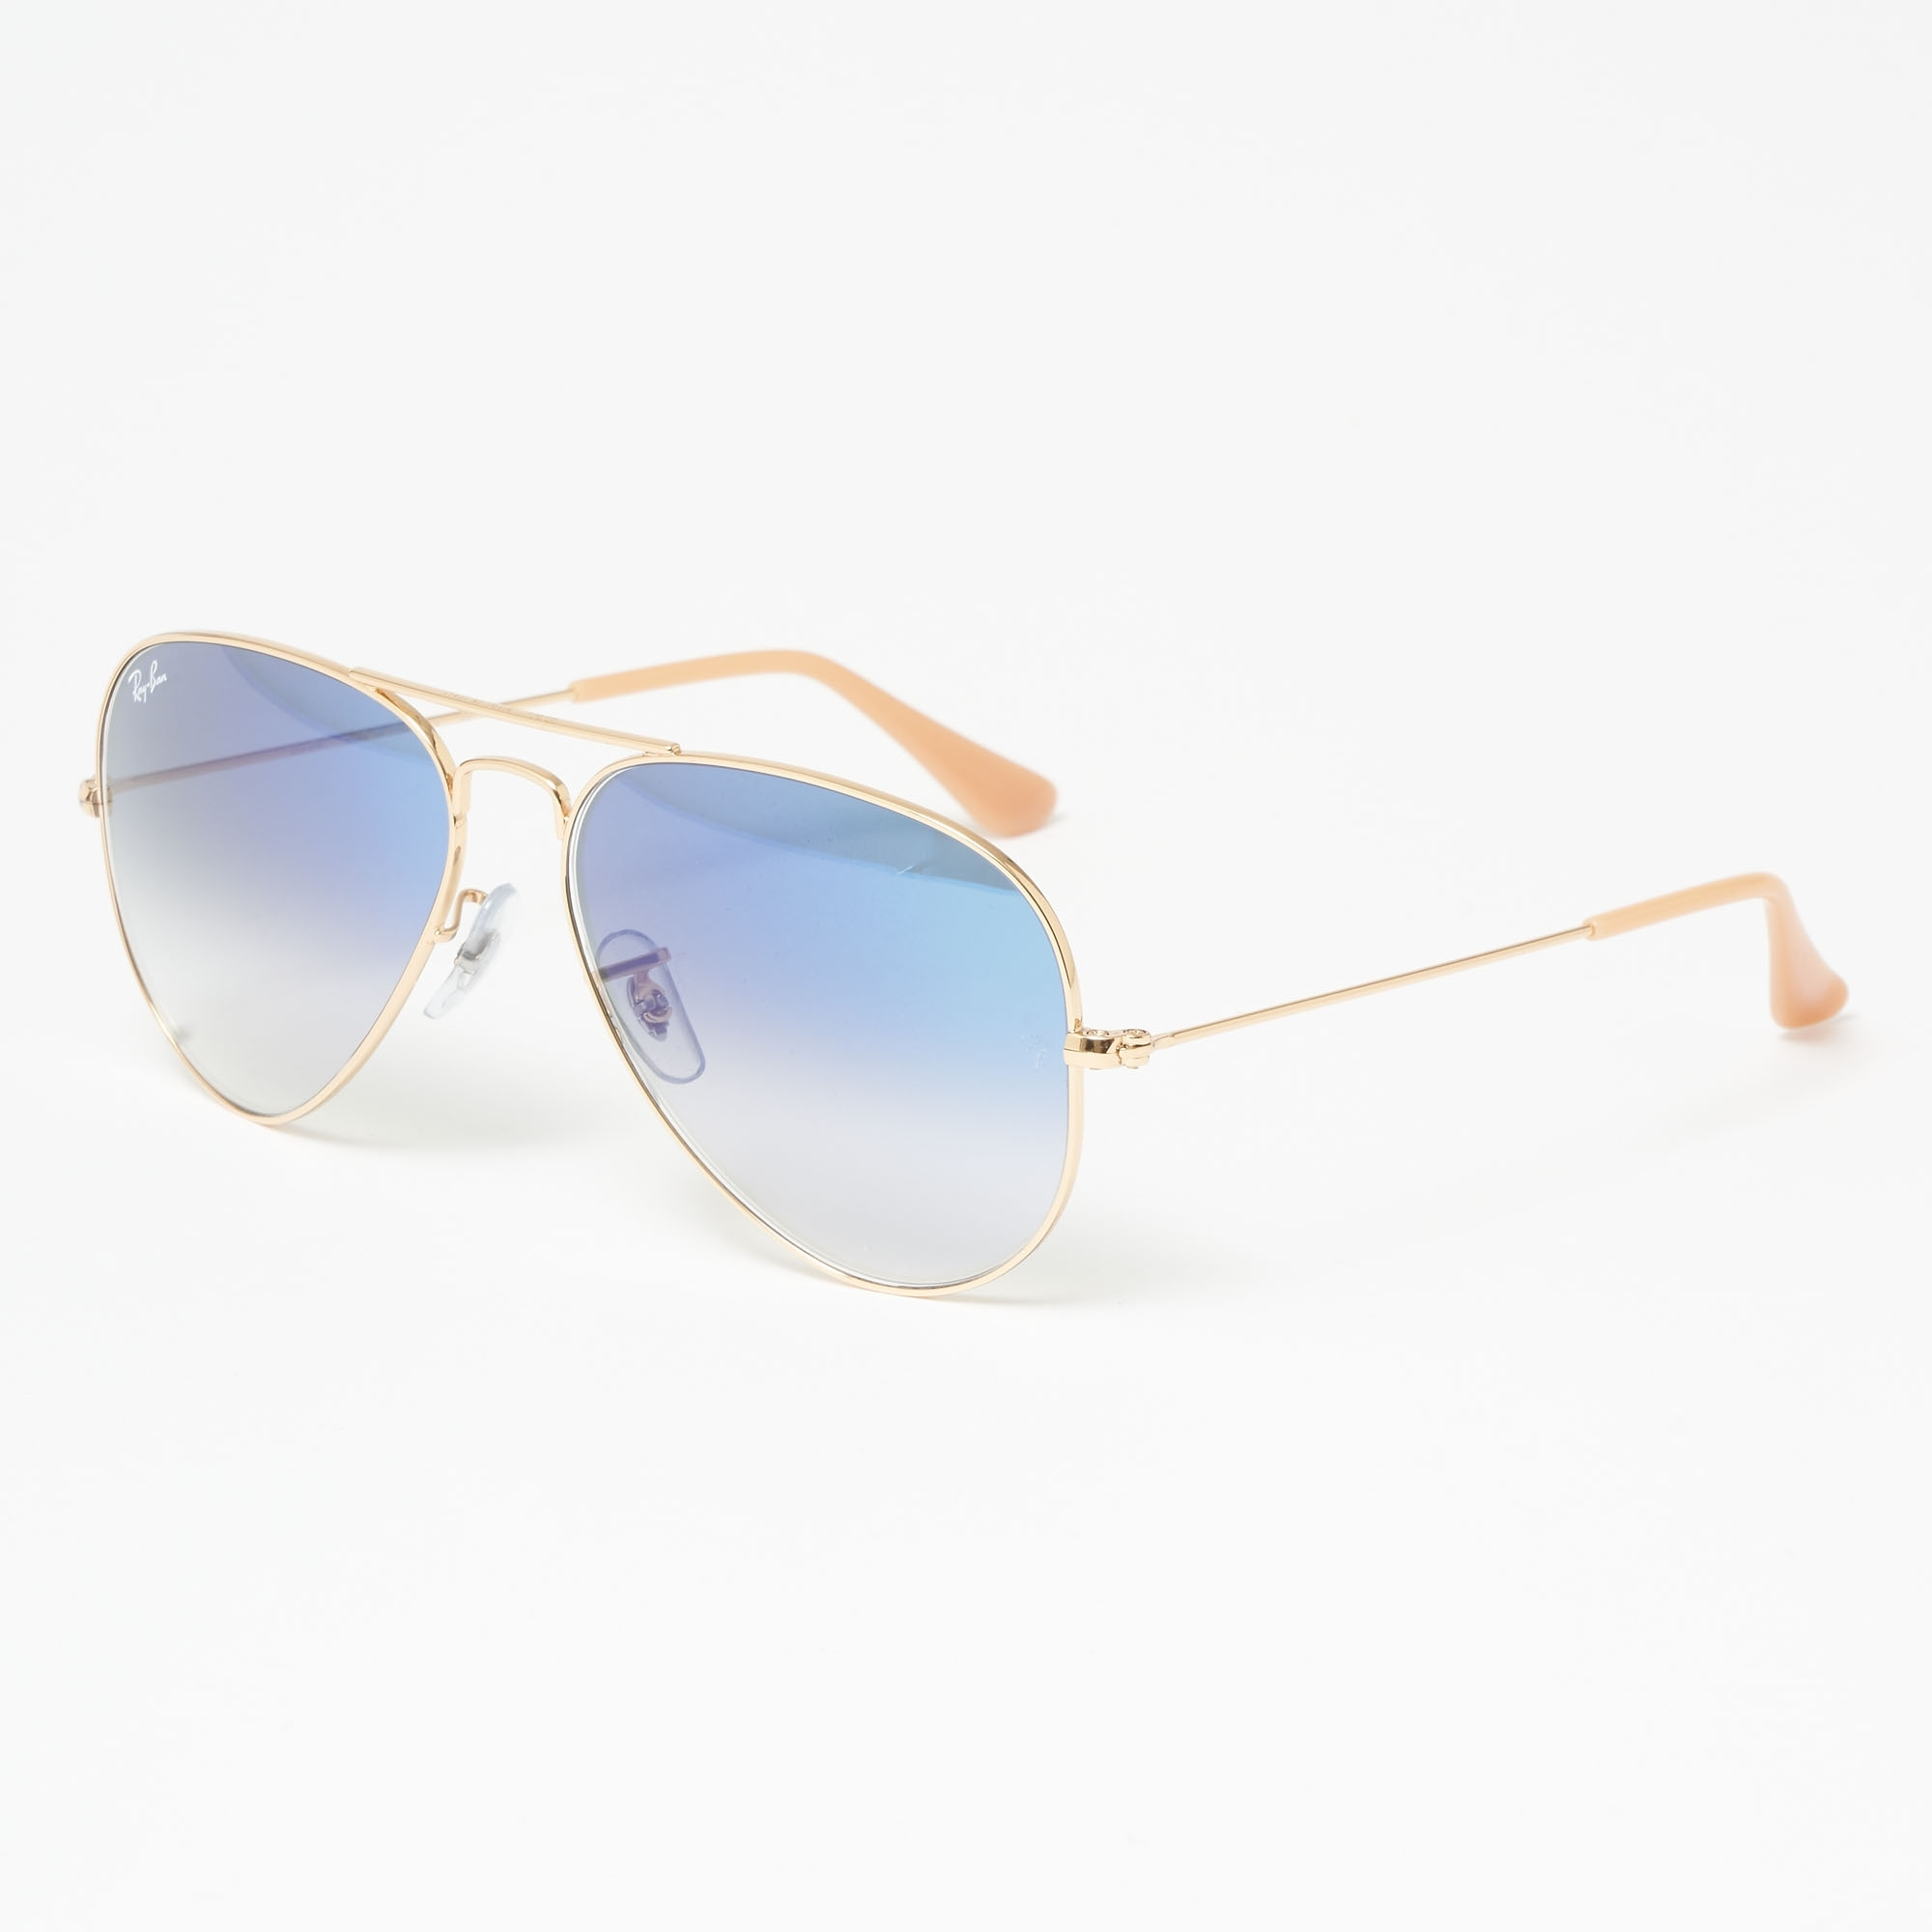 ray ban blue lens sunglasses uk